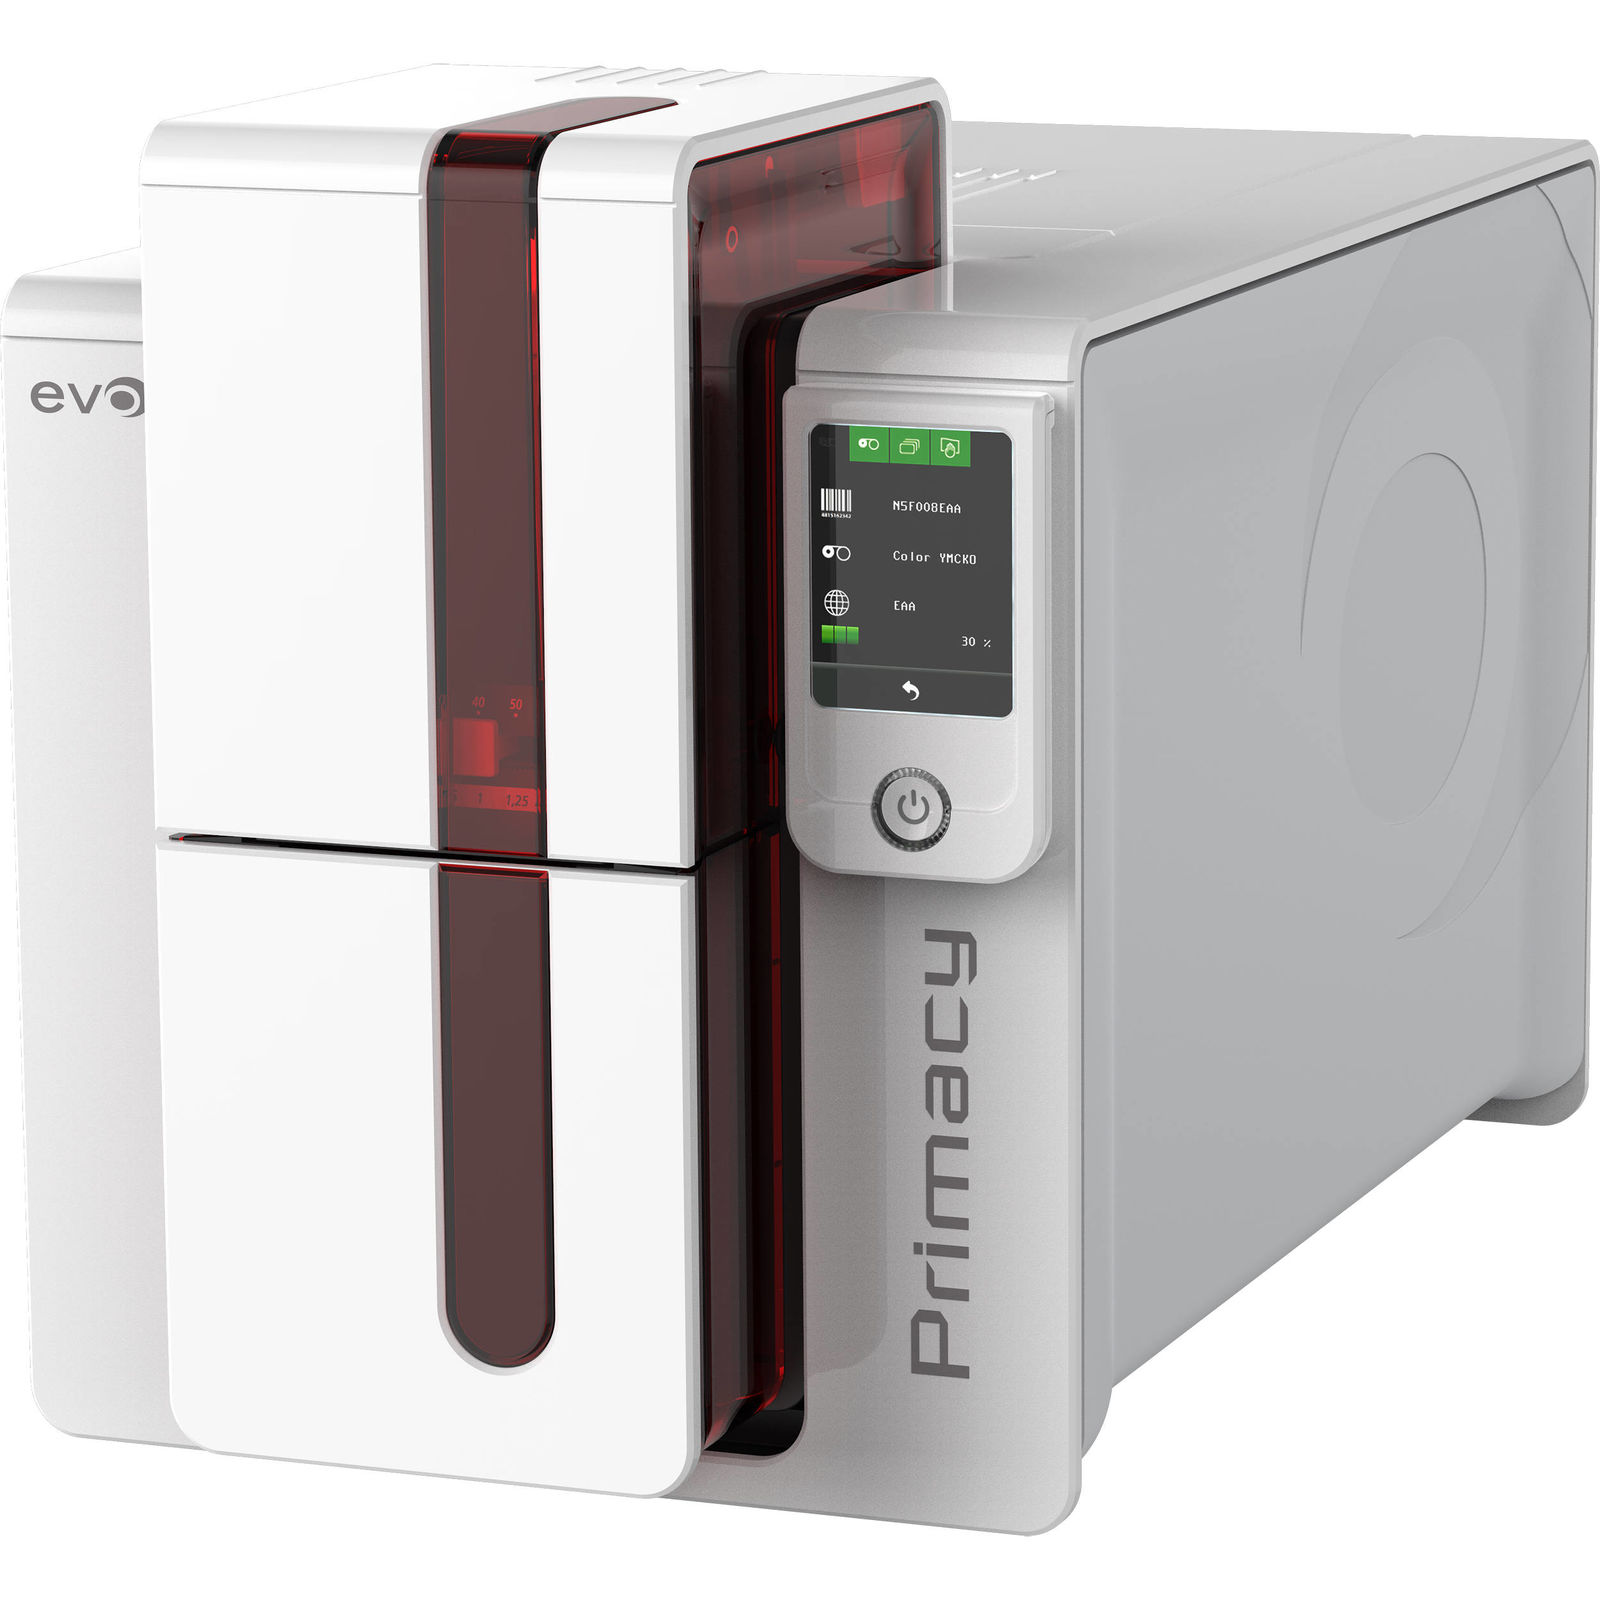 evolis-primacy-with-lcd-screen